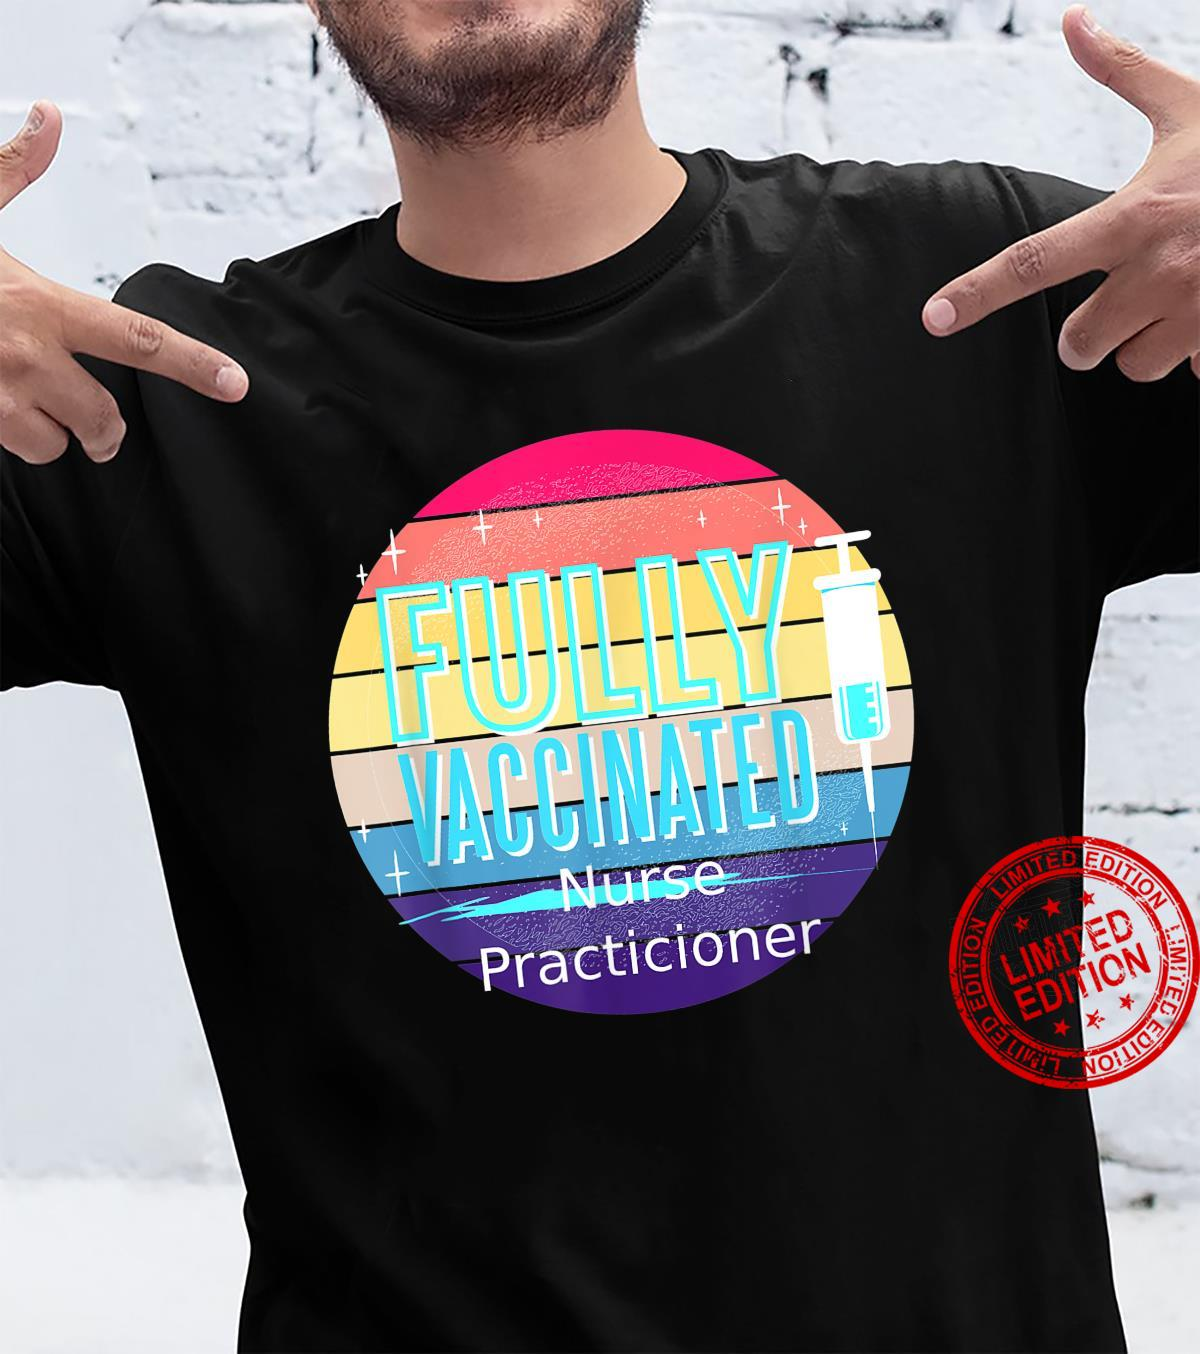 Fully Vaccinated Nutritionist Shirt